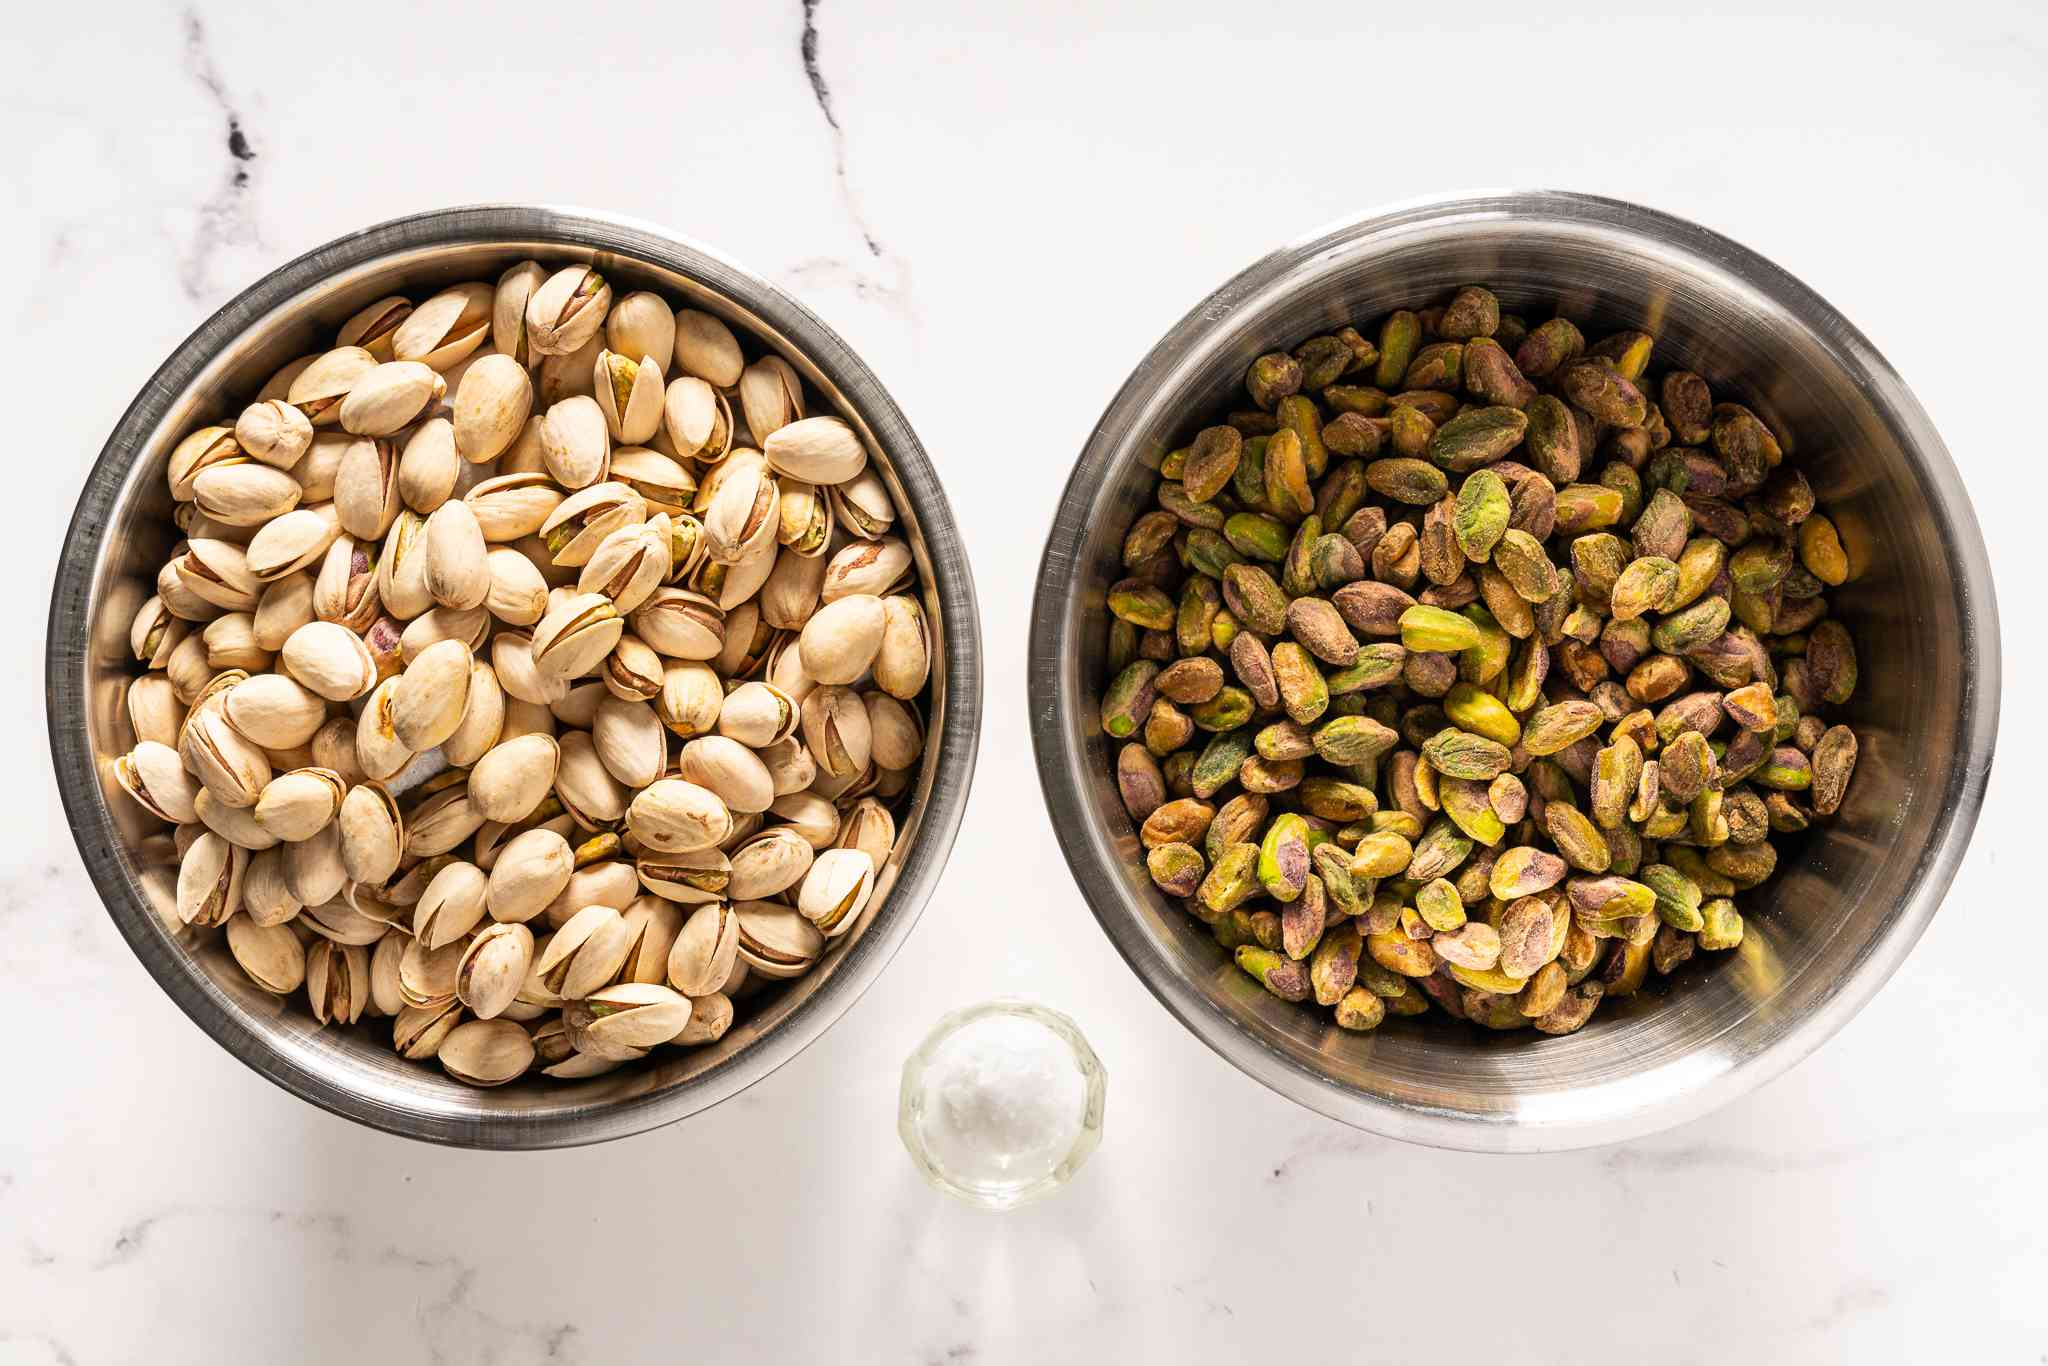 Pistachio butter ingredients, showing shelled and unshelled nuts